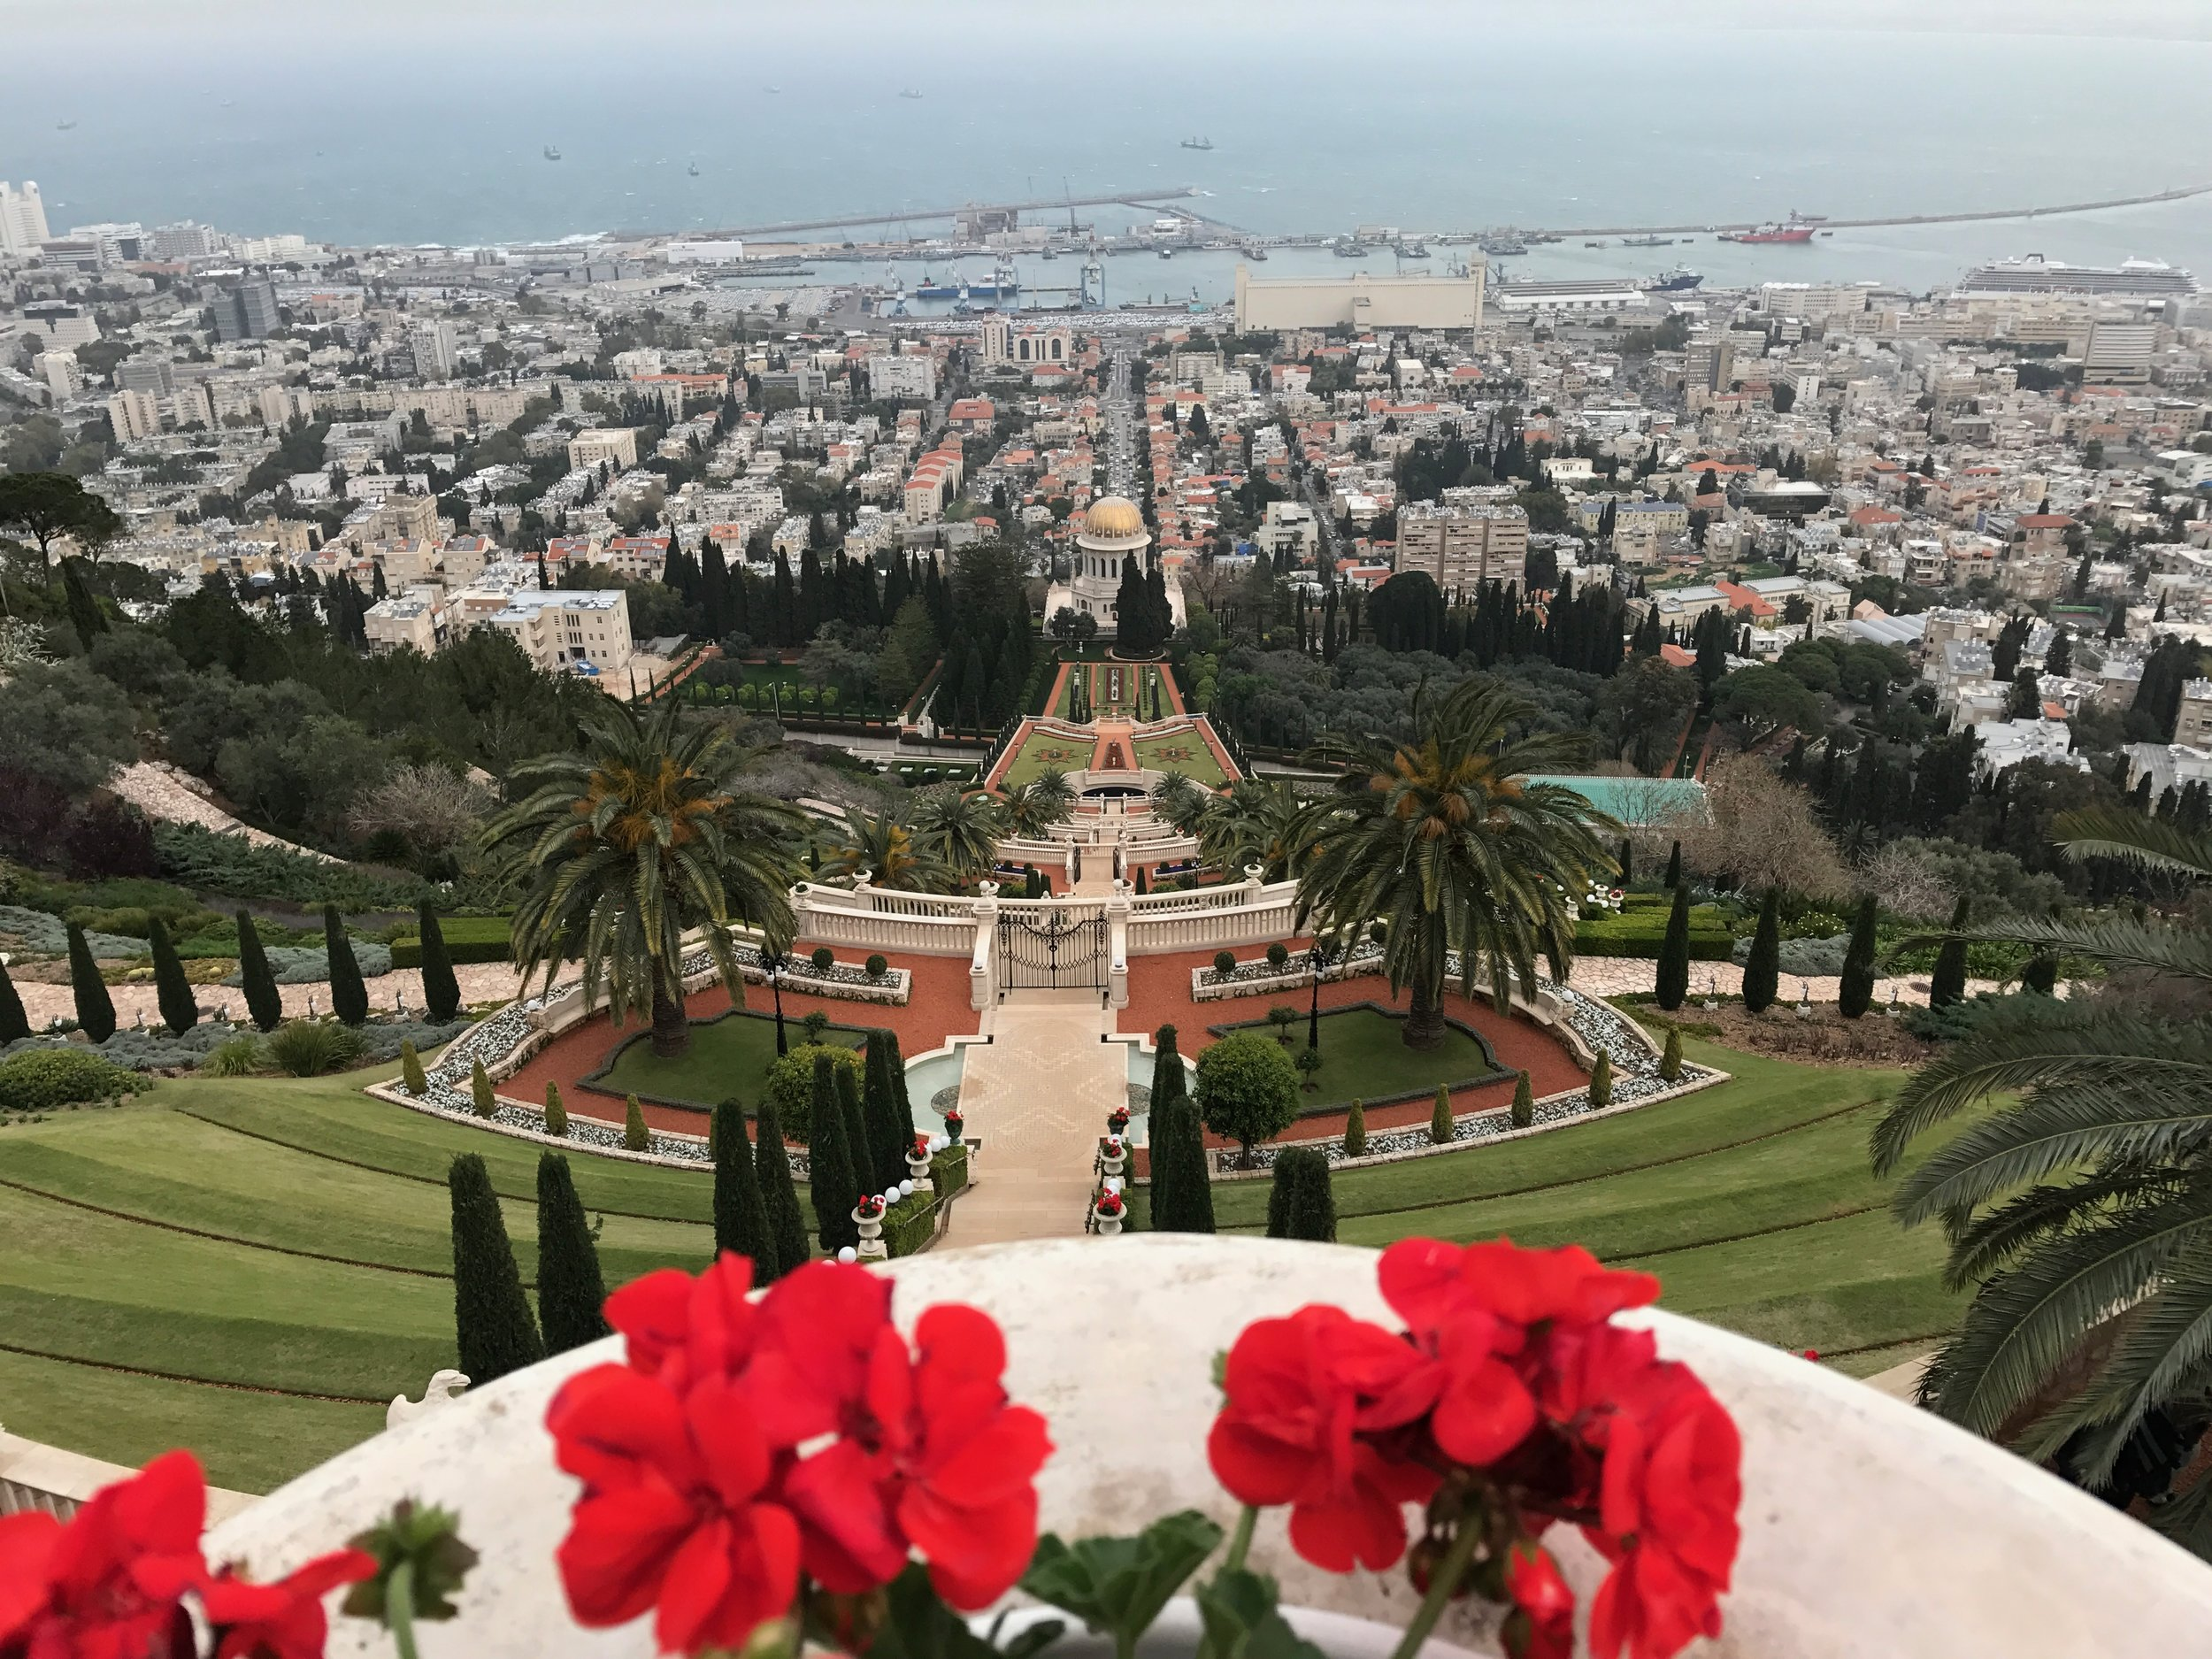 The hanging gardens in Haifa